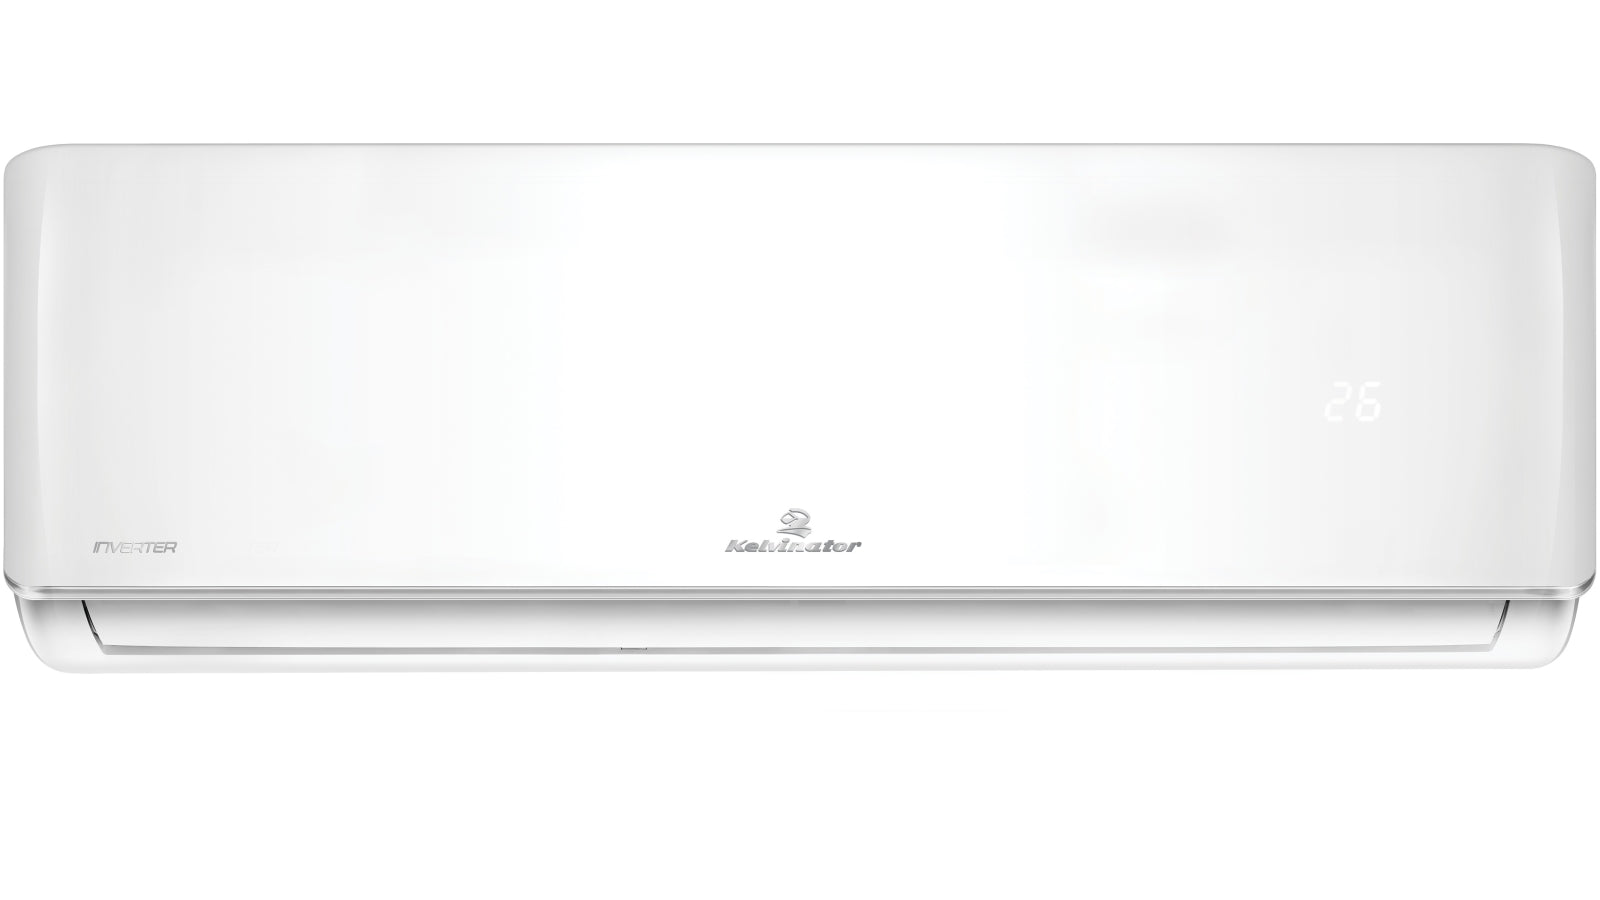 Kelvinator KSV90HWH 9kW Reverse Cycle Split System Wi-Fi Air Conditioner